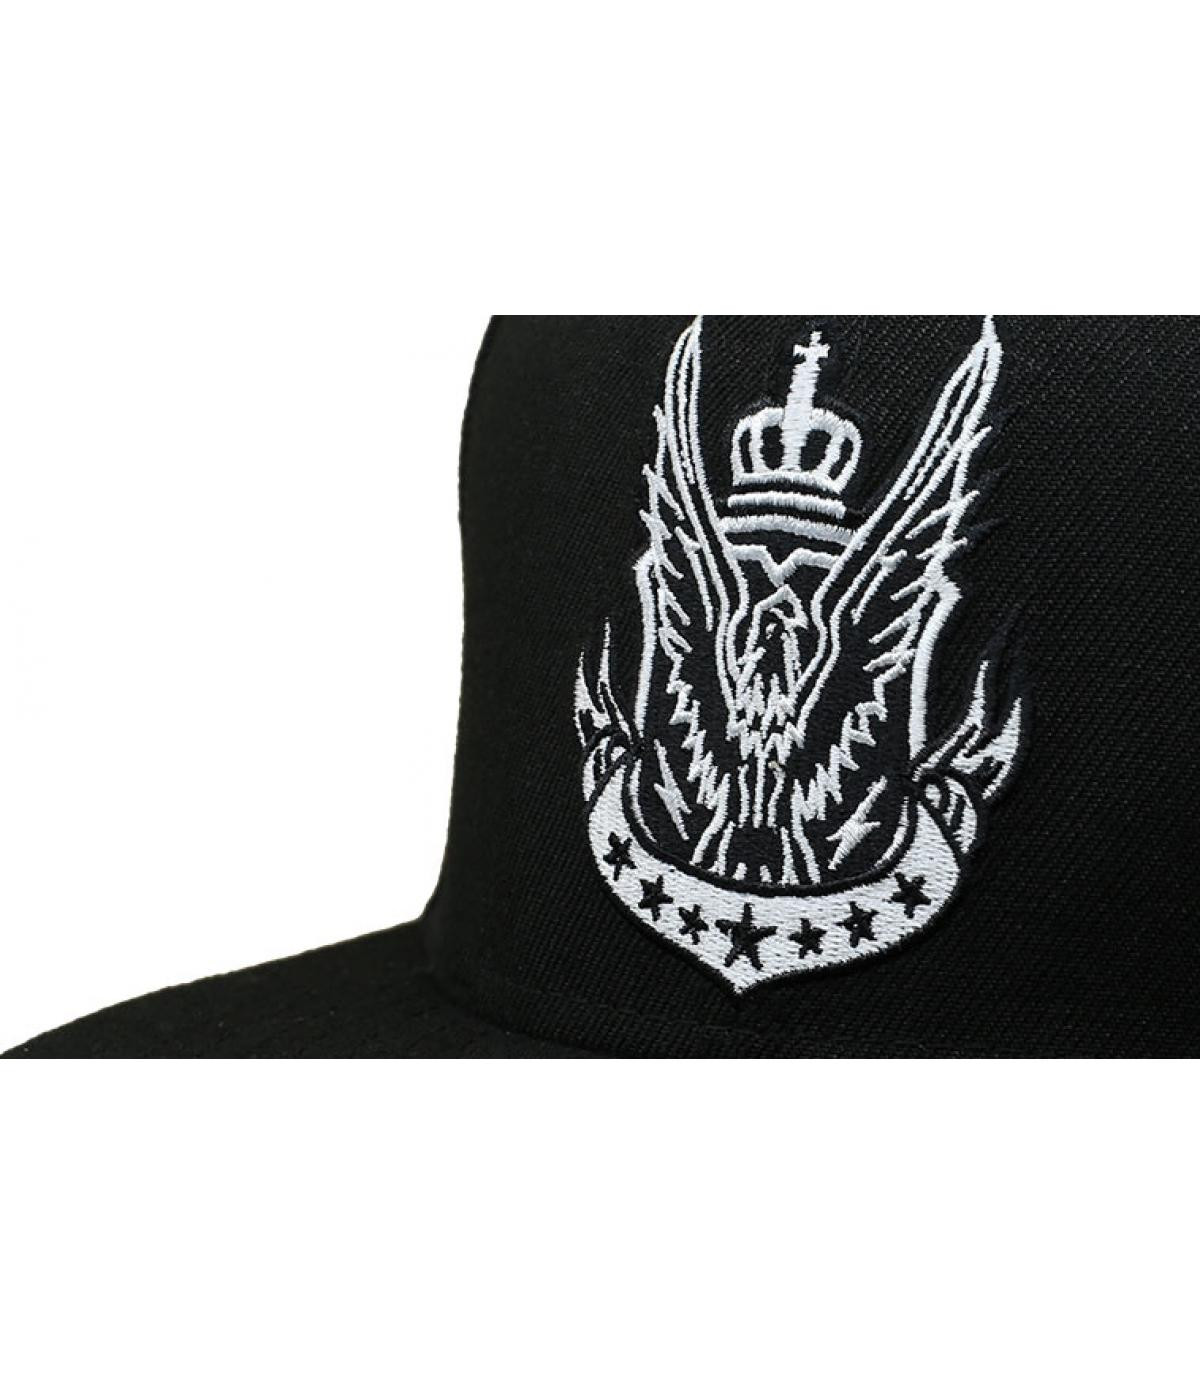 Details Snapback Call of Duty MW - afbeeling 3